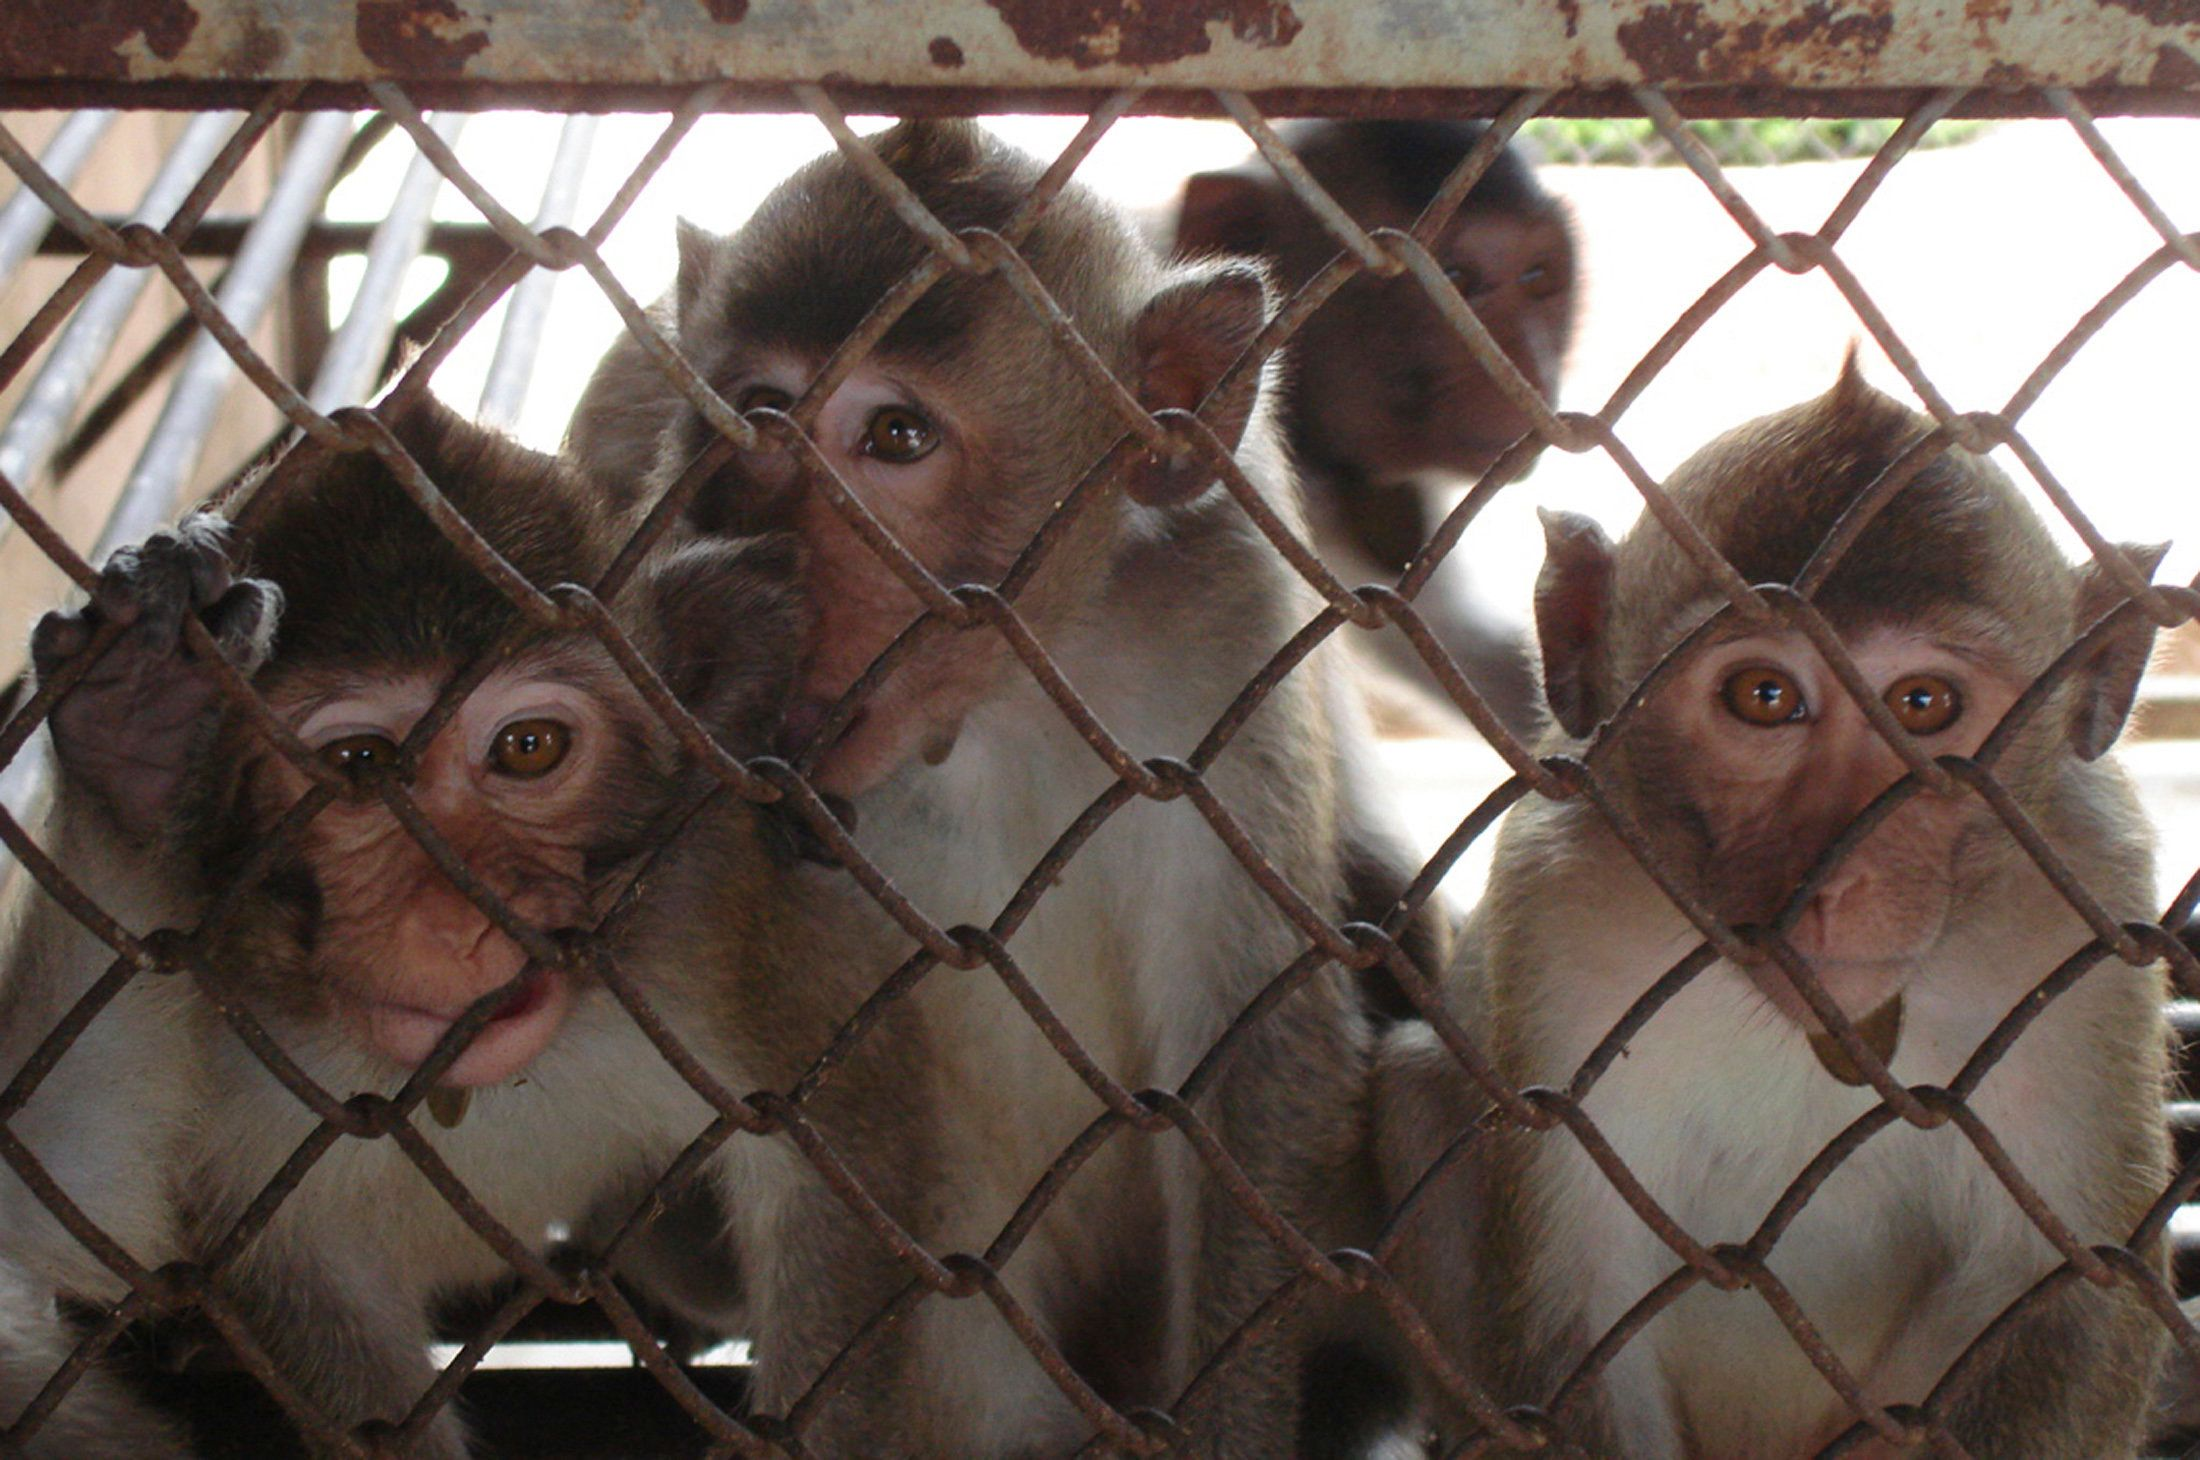 A undated handout picture taken recently by the British Union for the Abolition of Vivisection (BUAV) shows monkeys kept at Vanny Bio-Research in the Srok Kean Svay district in Cambodia. An animal rights group says Cambodia is flouting international conventions by allowing the cruel capture of monkeys for research in the United States and China. A report to be released on November 24, 2008 by the BUAV says thousands of long-tailed macaque monkeys are taken from the wild each year and kept in cruel conditions before being exported.  REUTERS/BUAV/Handout (CAMBODIA).  FOR EDITORIAL USE ONLY. NOT FOR SALE FOR MARKETING OR ADVERTISING CAMPAIGNS.